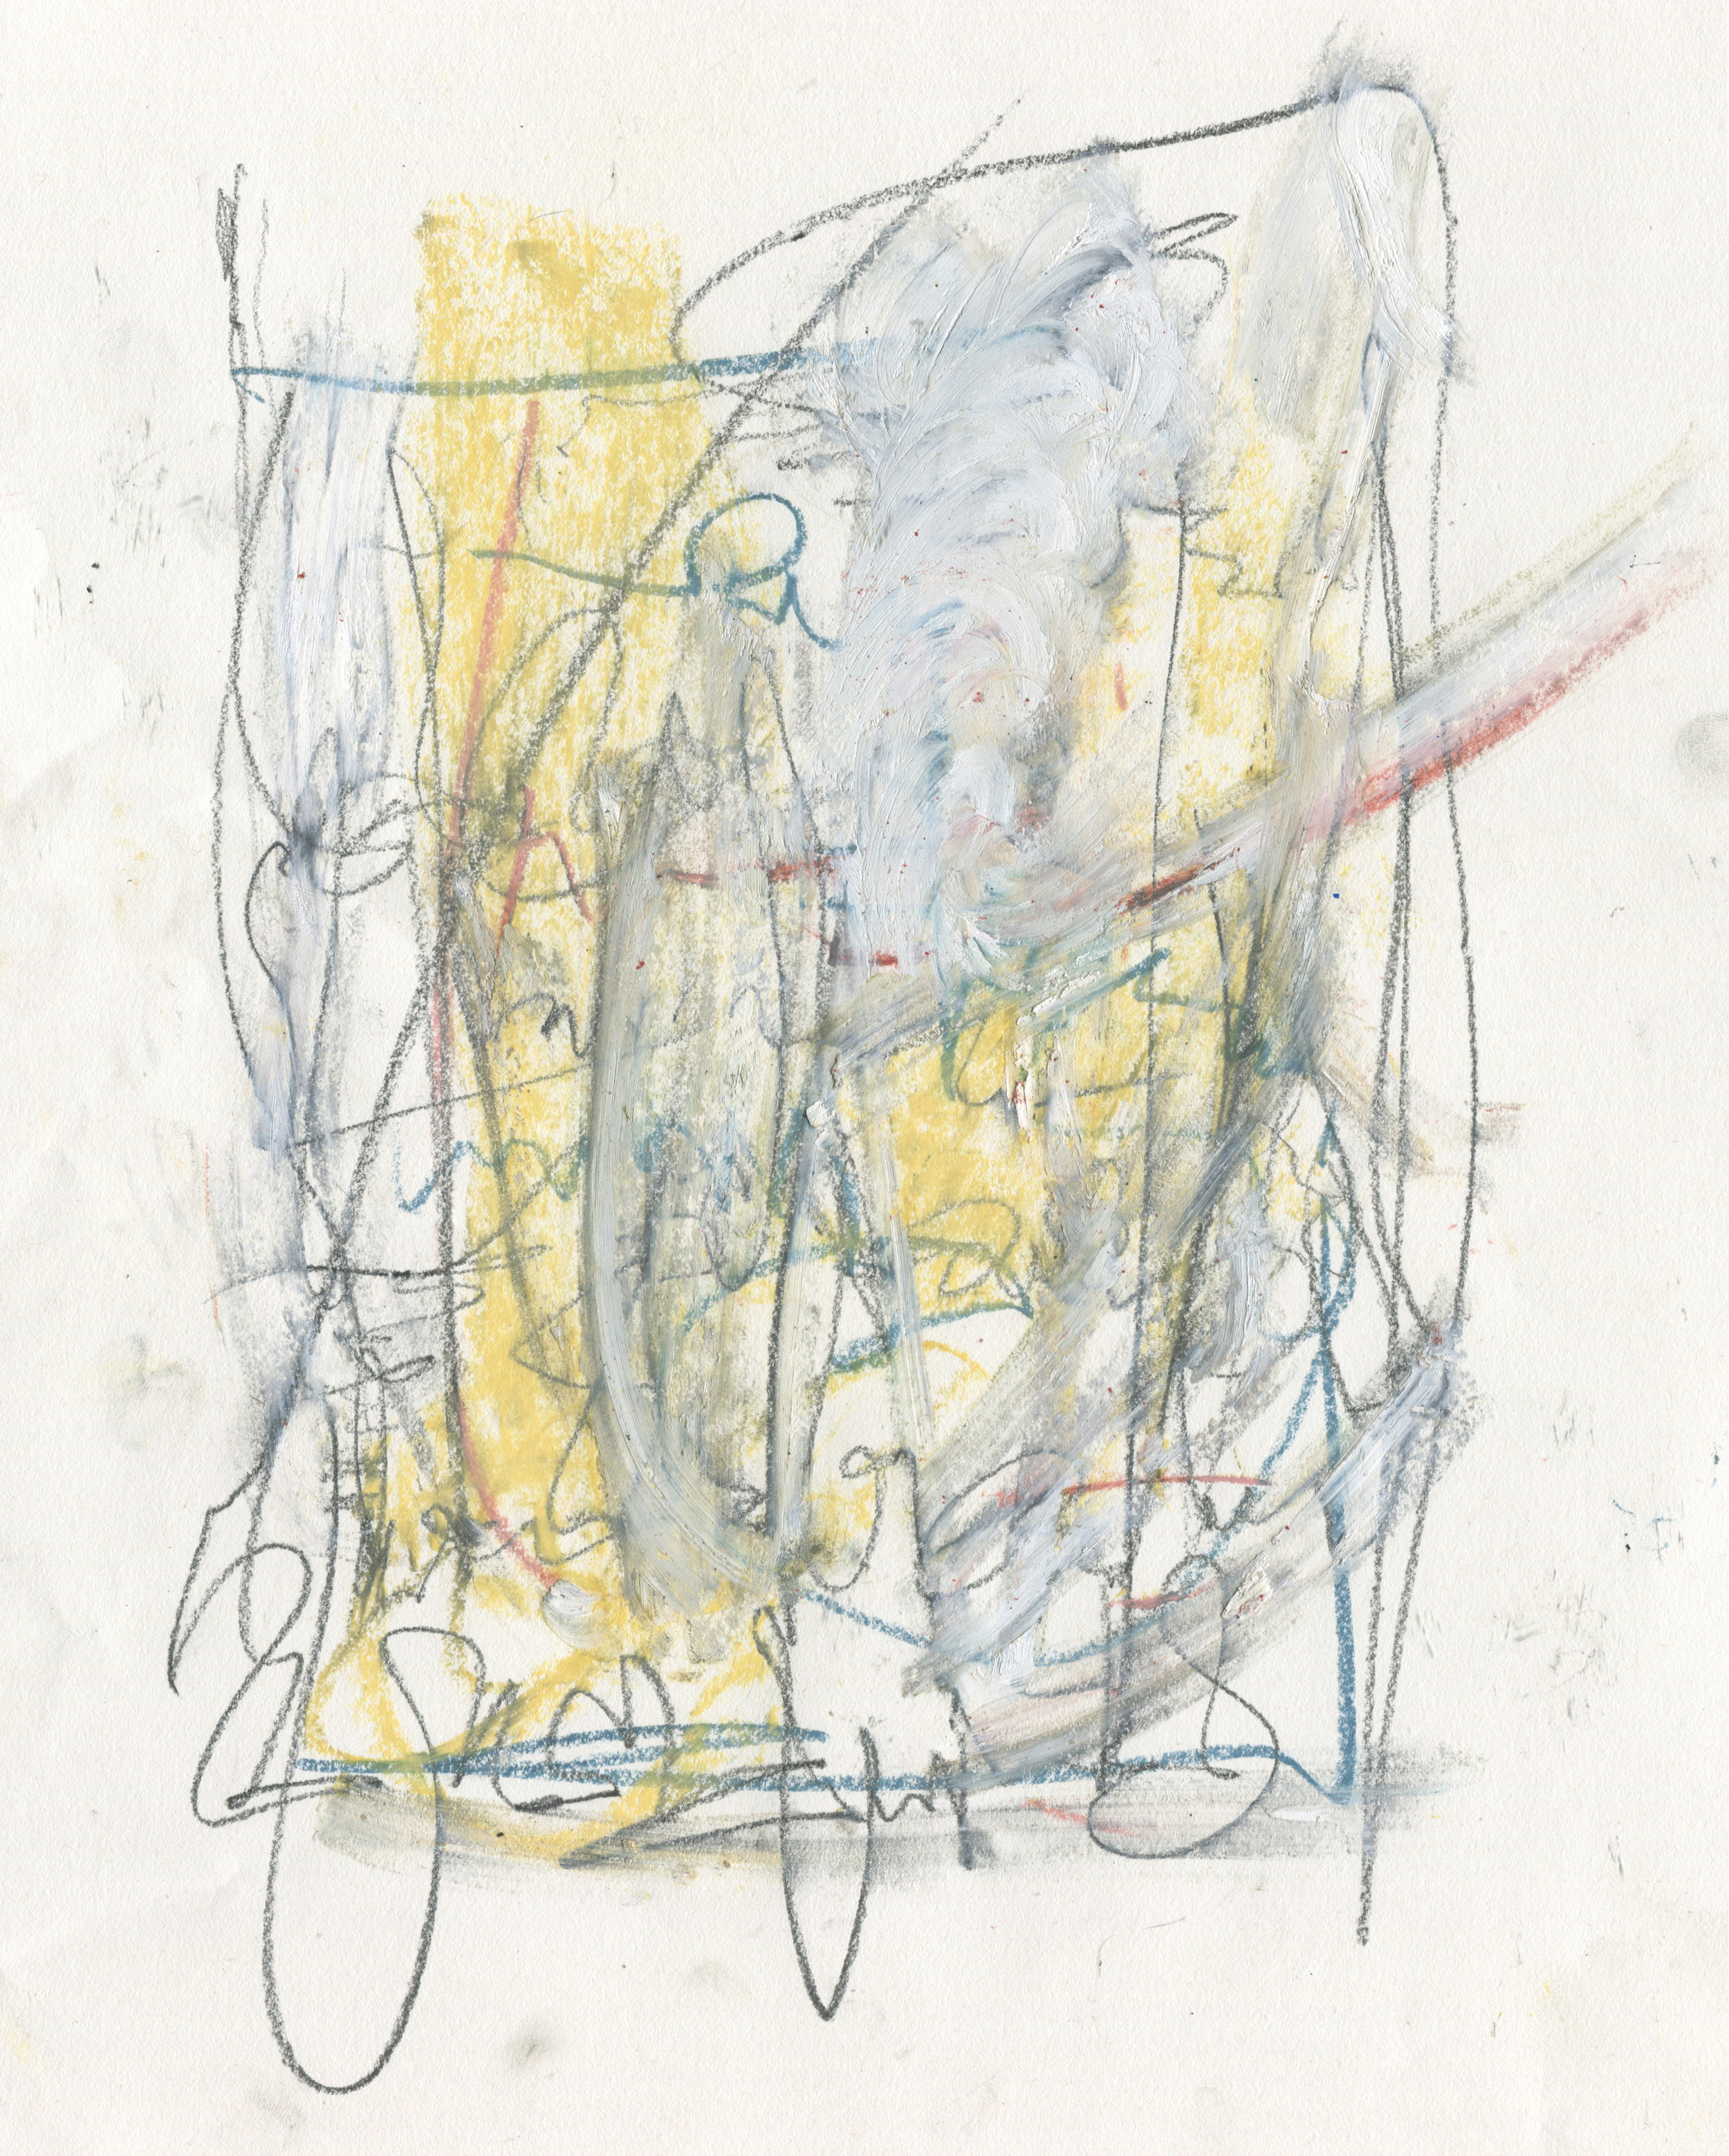 Schism , 2016  14 x 11 inches  Crayon, Oil Stick, Cante Crayon, Graphite and Pastel on Paper